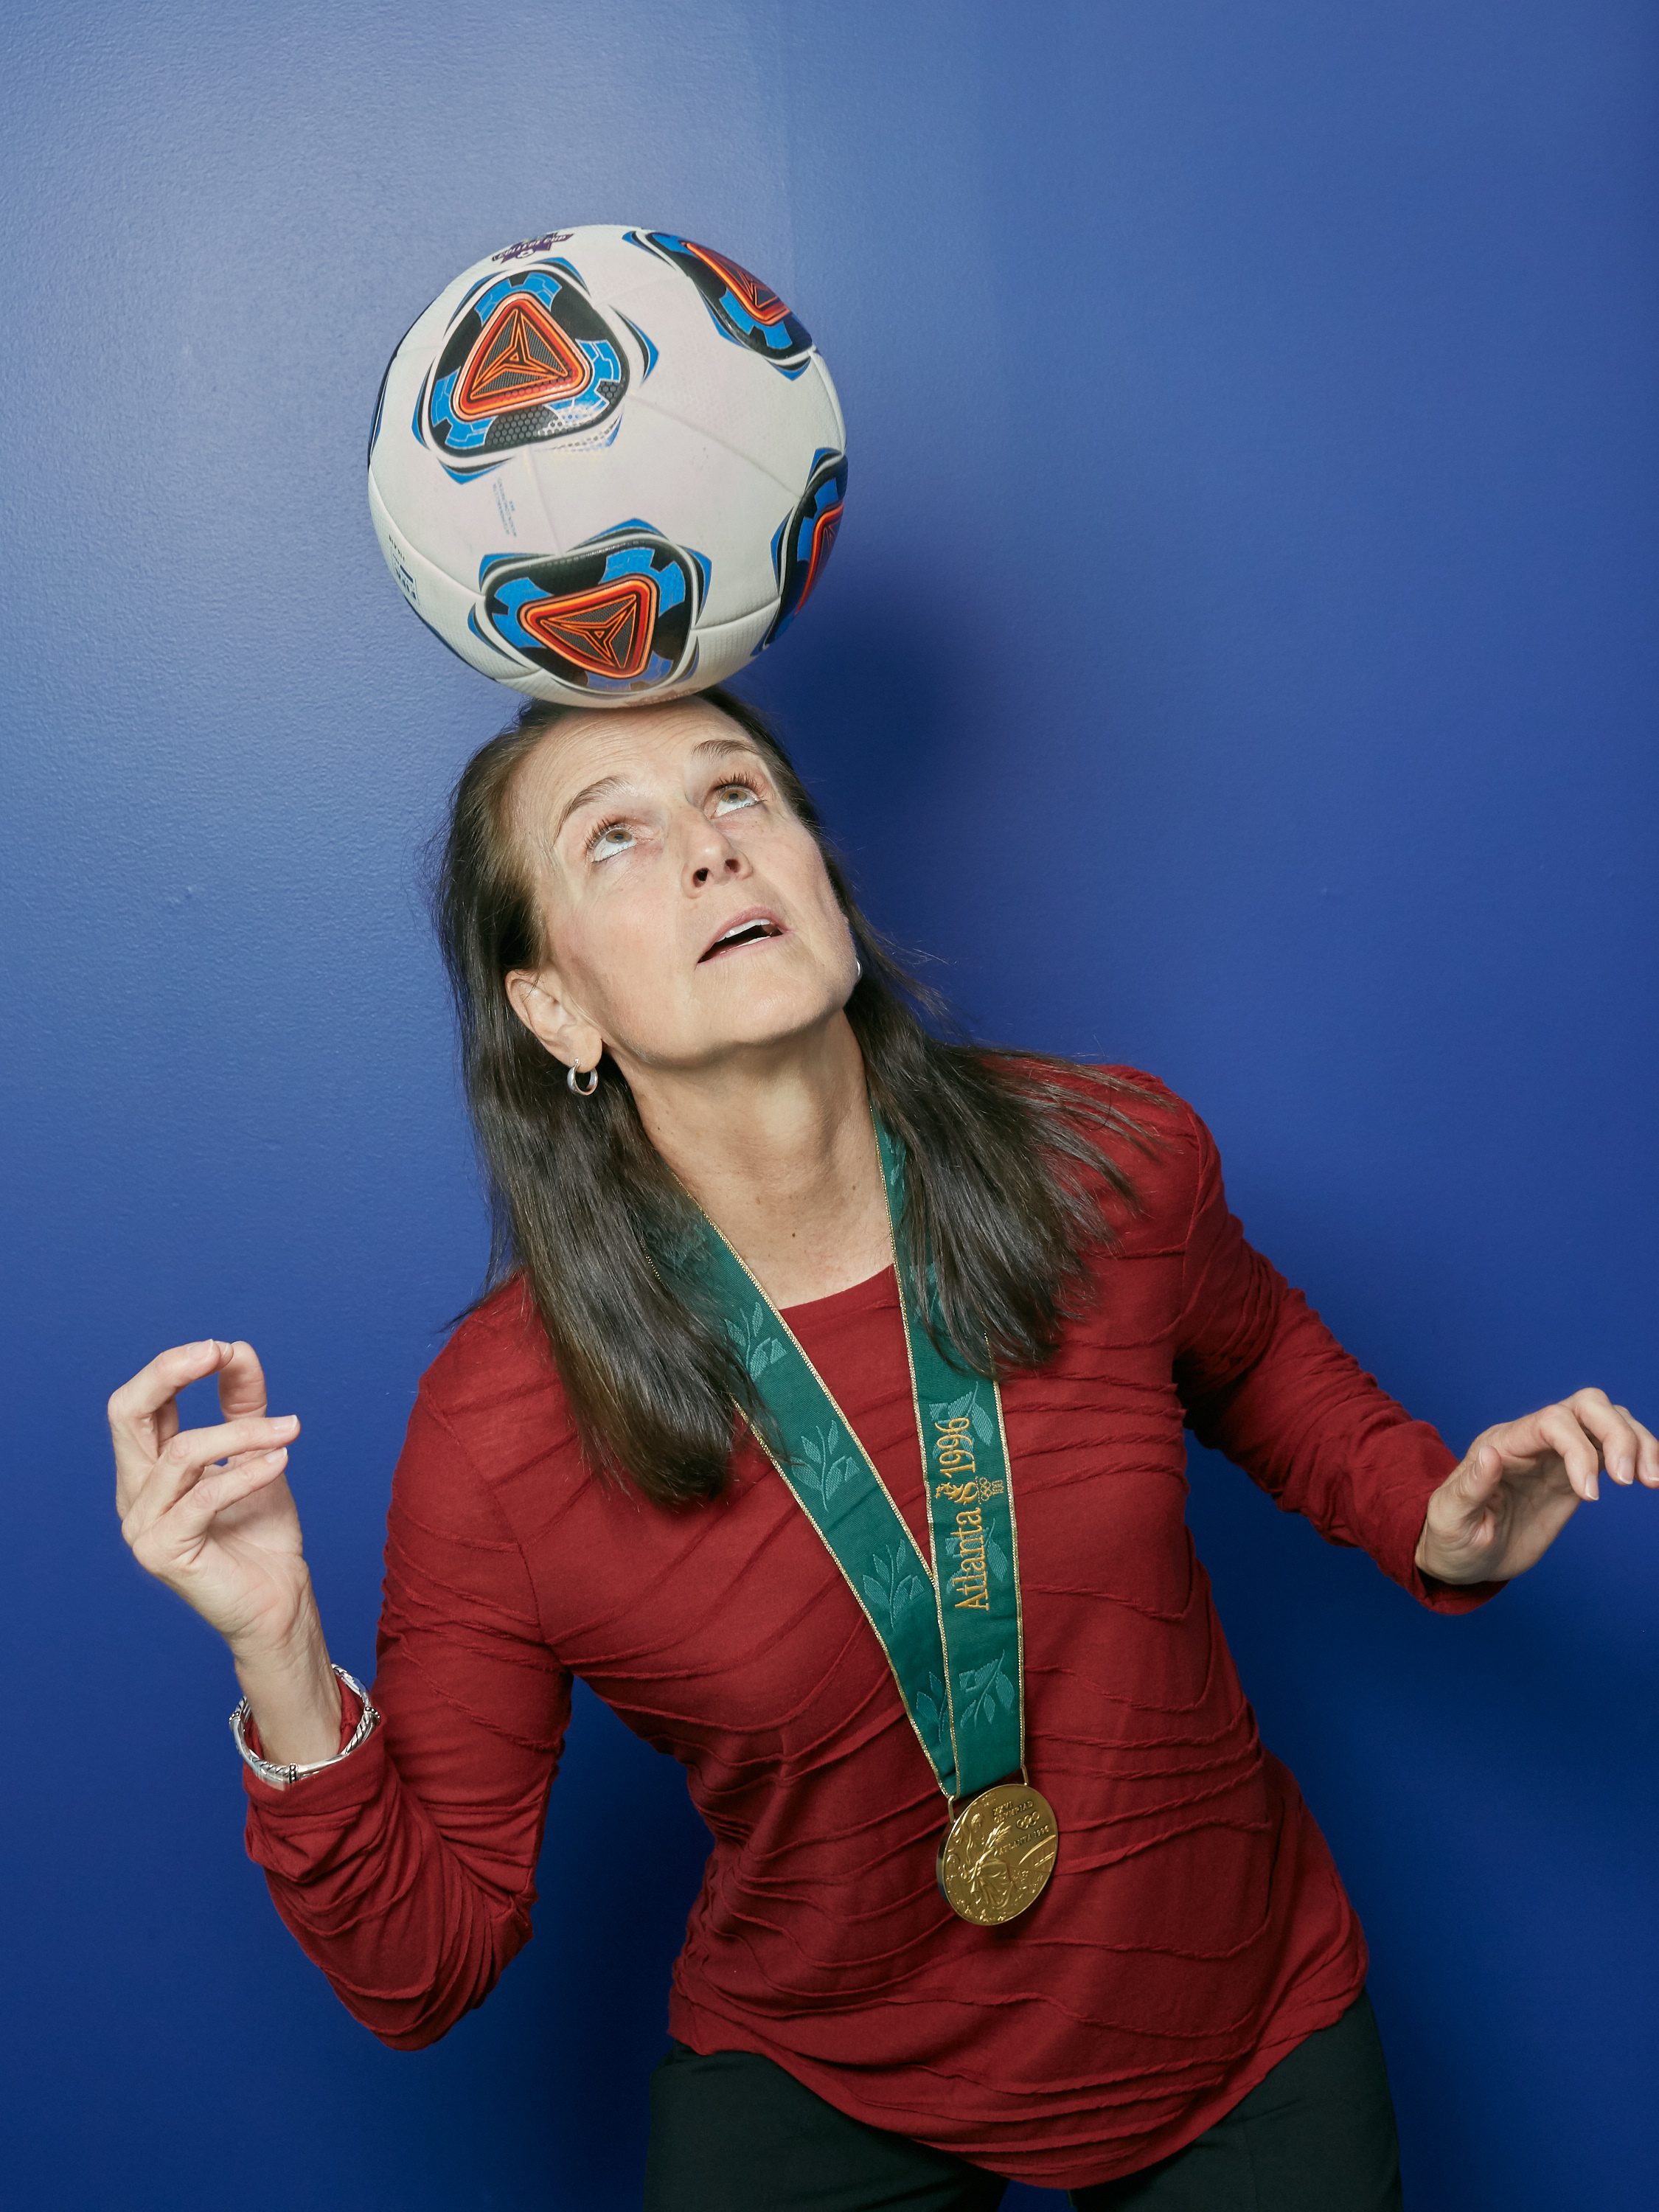 Carla Overbeck, Assistant Coach of Duke University's Women's Soccer Team, and her gold medal from the 1996 Atlanta Summer Olympic Games. For Duke University.